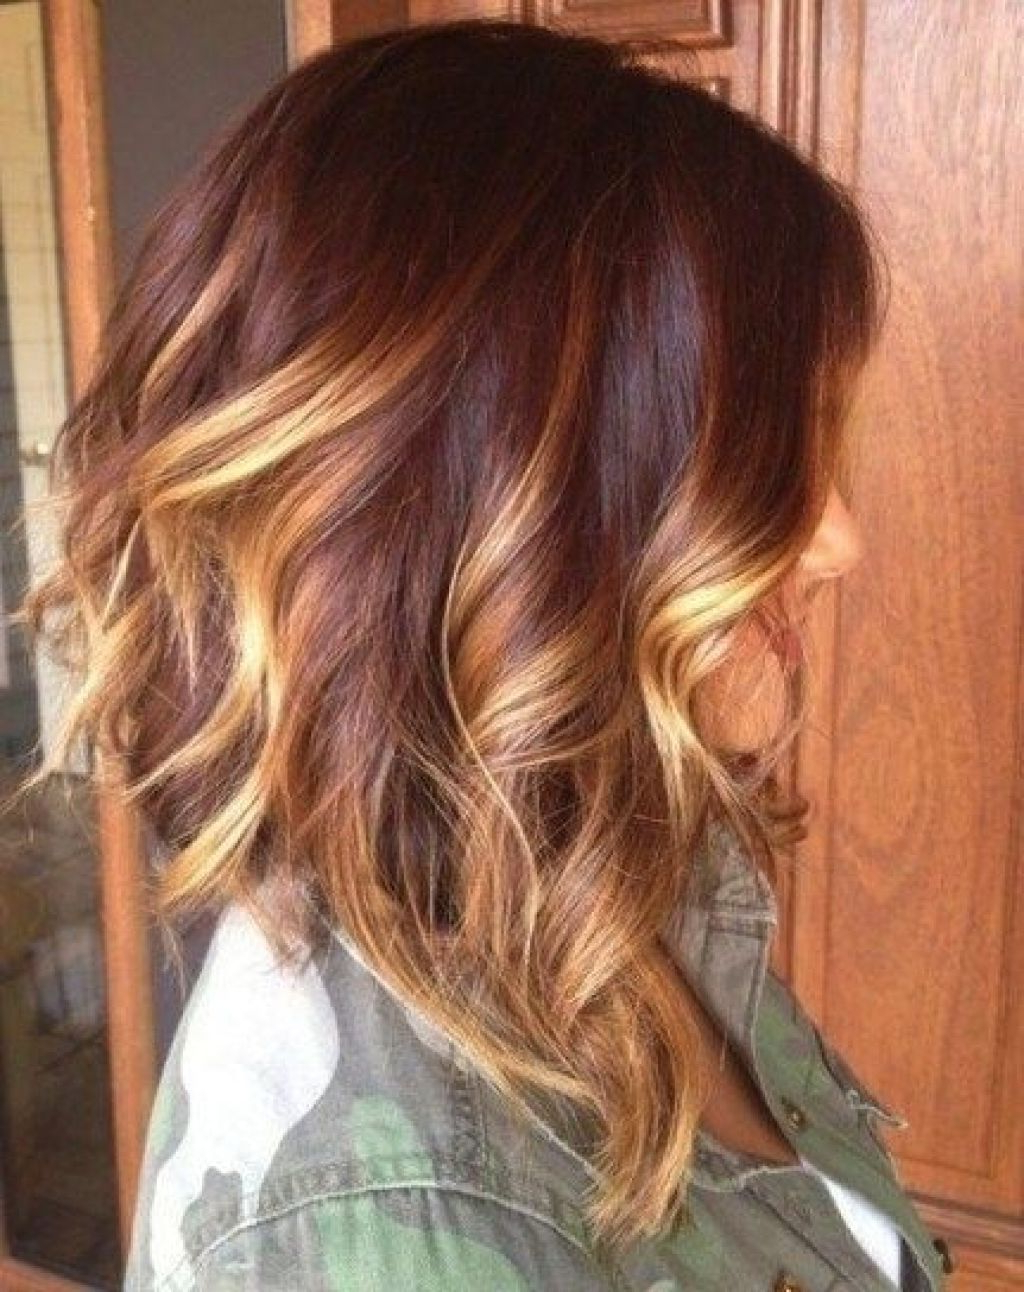 Fashionable Ombre Medium Hairstyles Intended For Ombre Hair Color On Medium Length Hair Hairstyle Haircut Ideas (View 7 of 20)